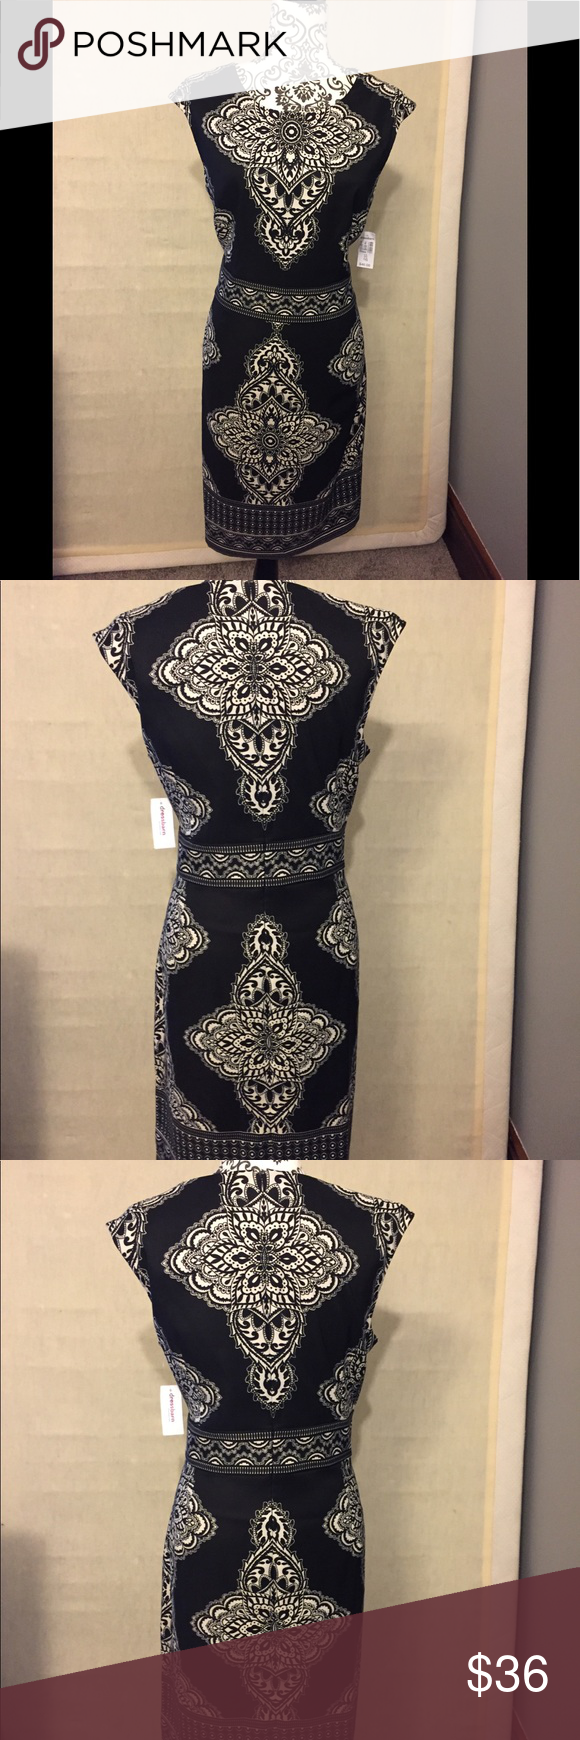 Black And Cream Patterned Dress New With Tags Dress Patterns Pattern Dresses [ 1740 x 580 Pixel ]